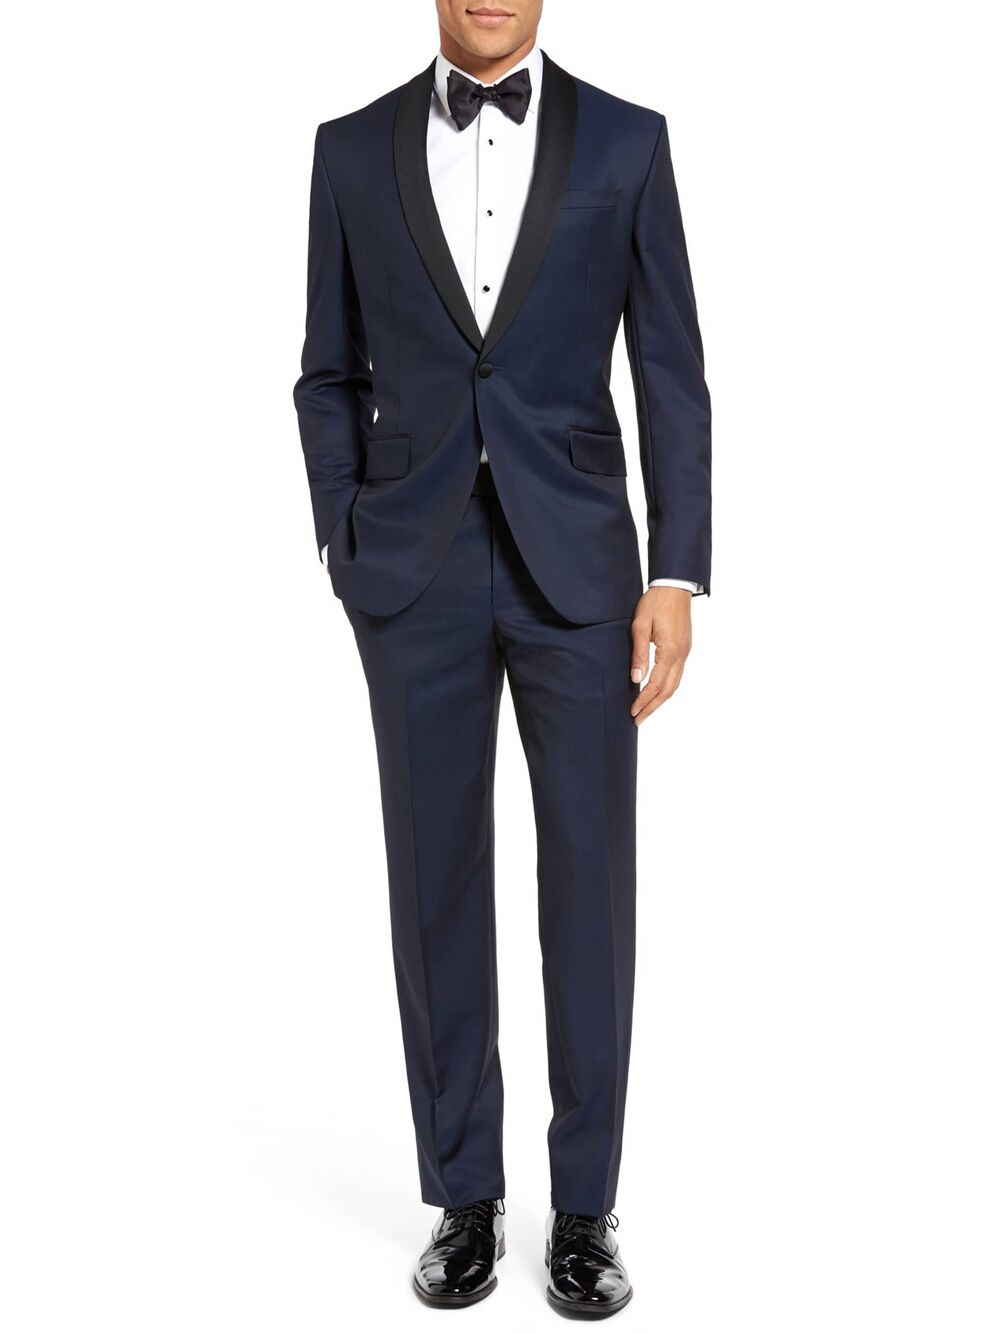 0964a8f32ff What to Wear to a Wedding  Wedding Outfits for Men and Women